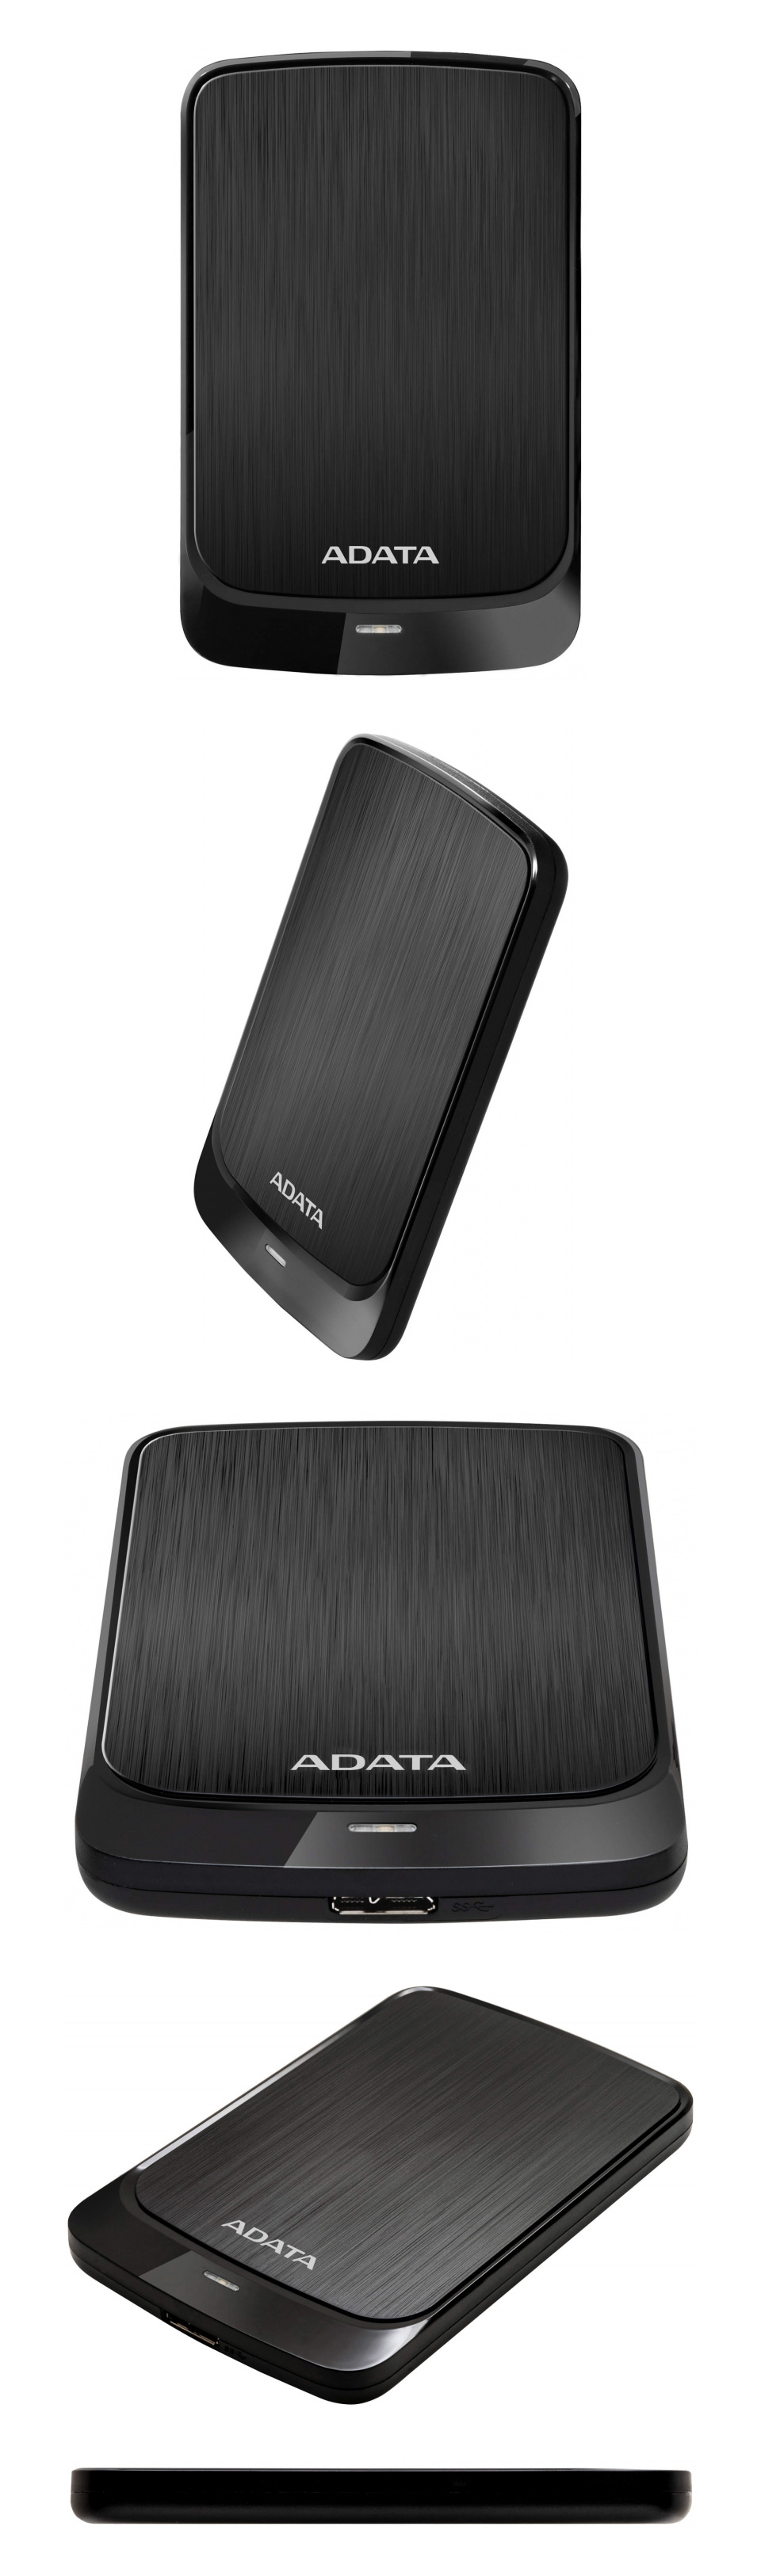 ADATA HV320S 1TB 2.5in External HDD Black product